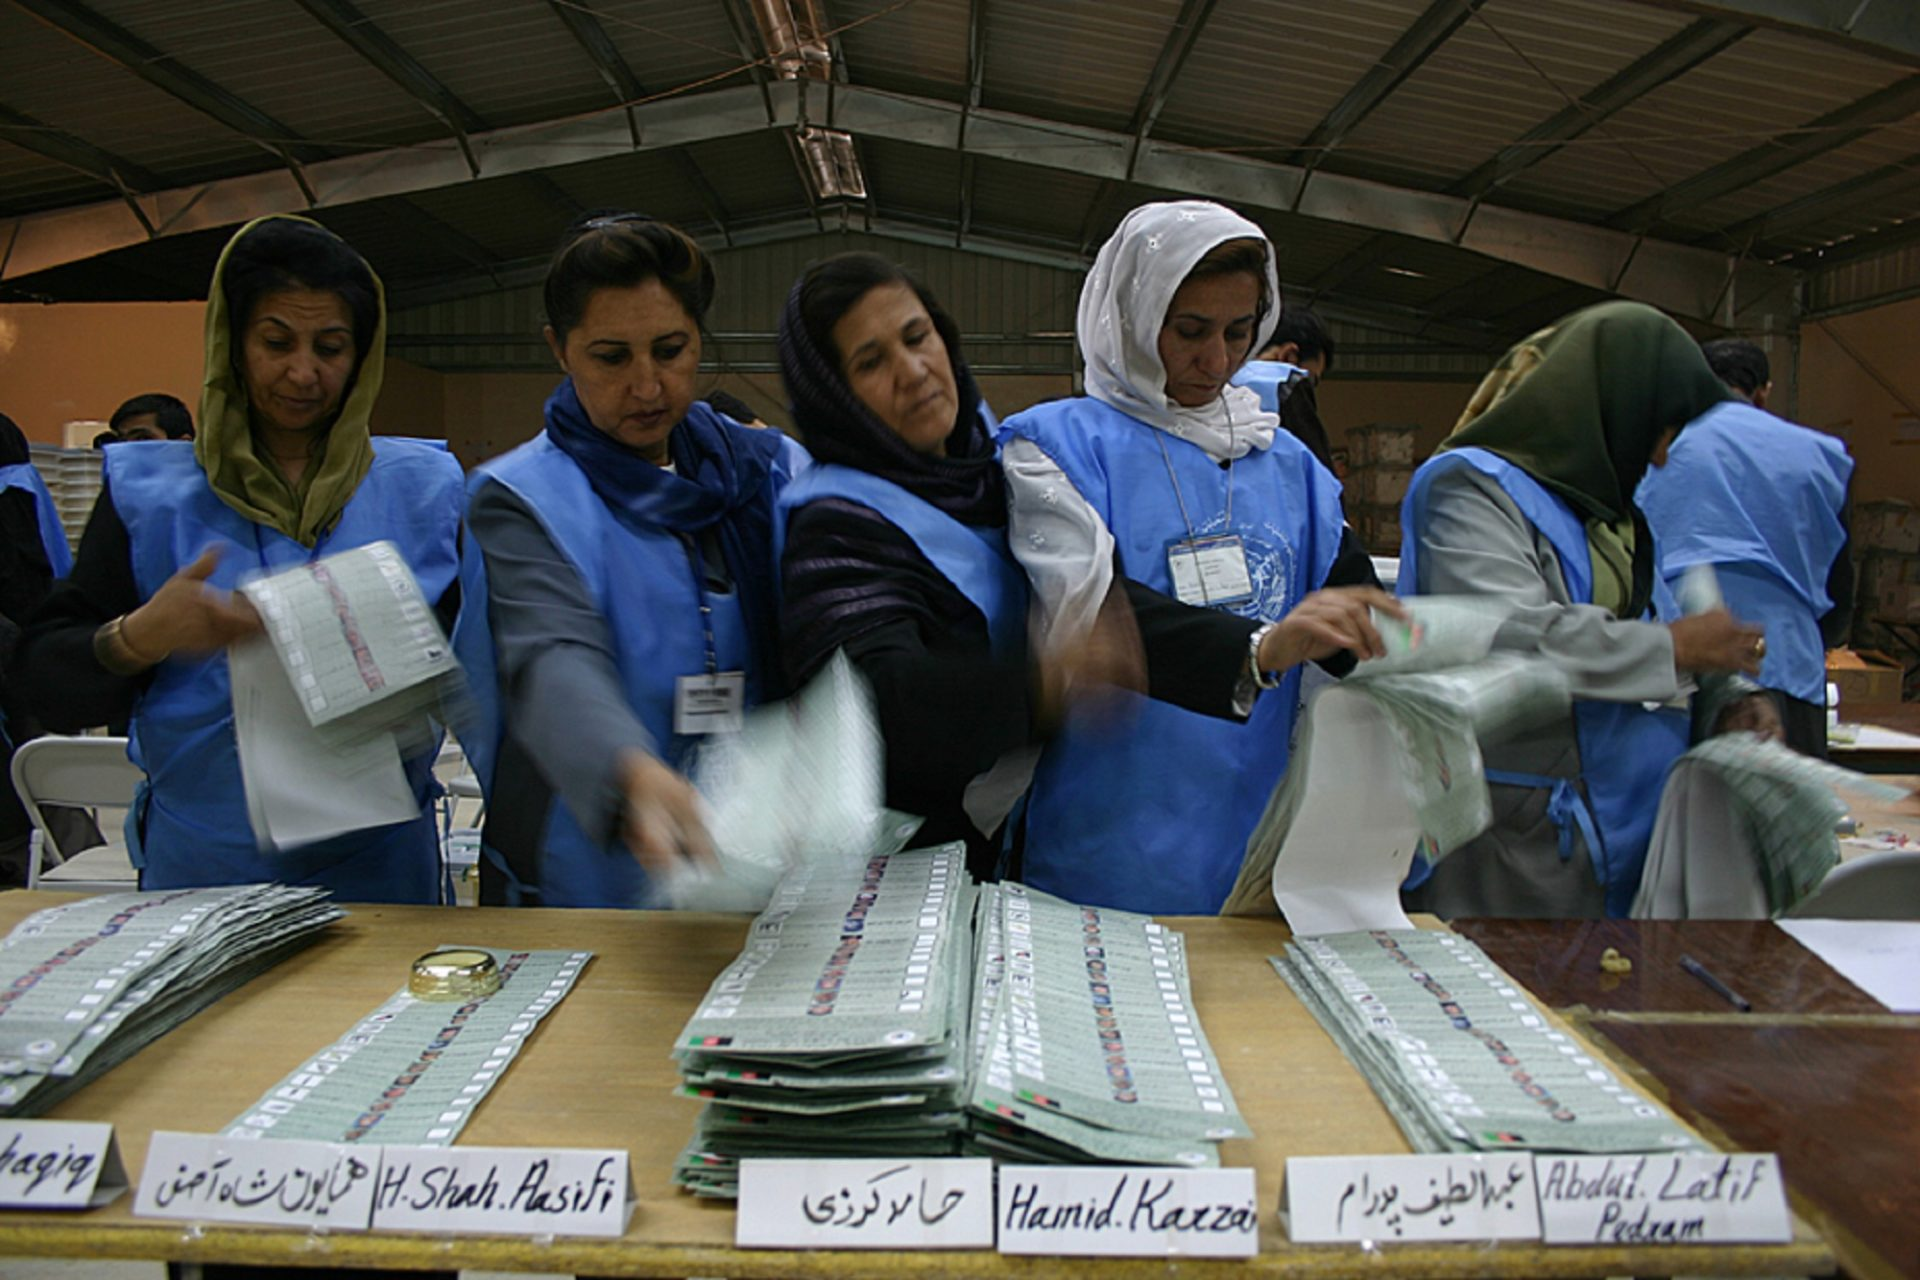 """In the Darulaman's Counting centre, in Kabul, nine days after the first direct presidential election, October 9, the UN-Afghan JEMB's (Joint Electoral Management Body) employees sort out the ballot papers per candidate from Kabul. Then, the total votes for each candidate are counted and recorded. This operation is called """"sorting and counting"""". Among the 10.5 million Afghans registered for the elections, around 8 million people have voted according the first estimations made one week after the vote."""